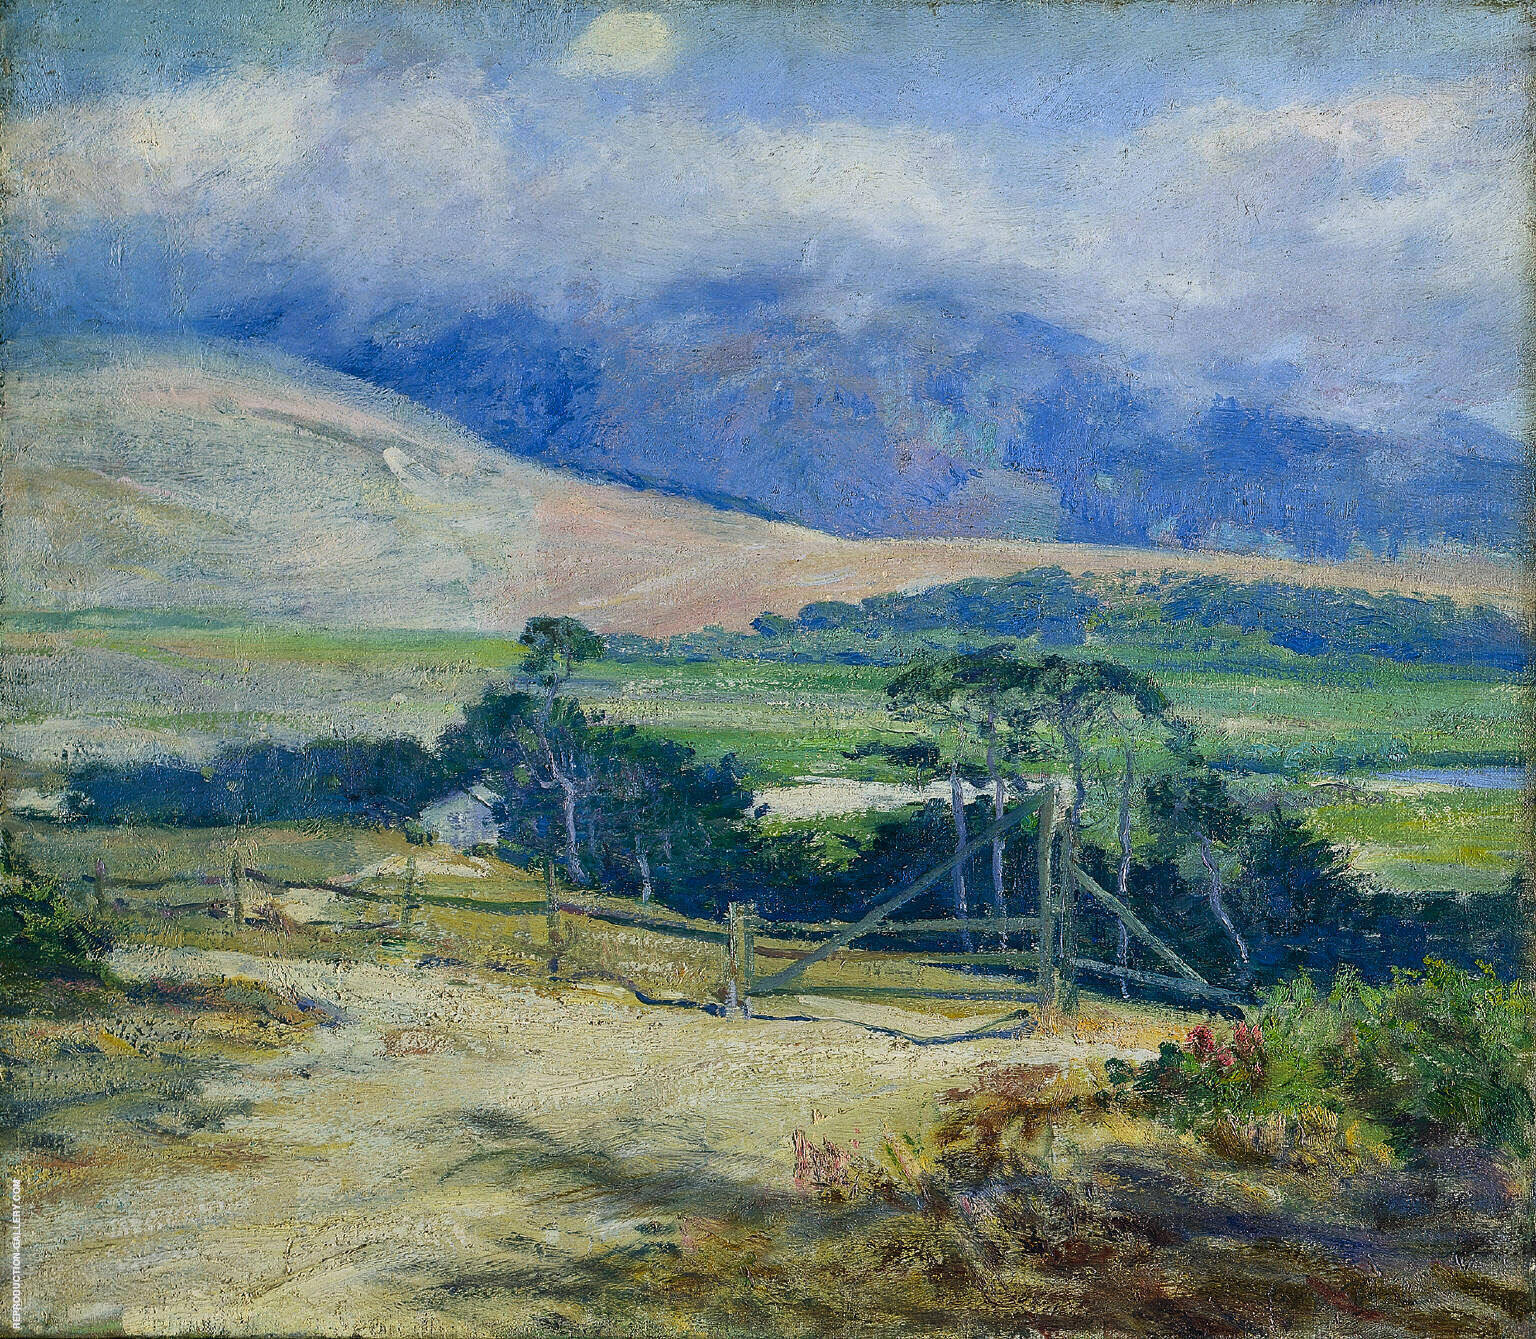 Carmel Hills 1914 Painting By Guy Rose - Reproduction Gallery